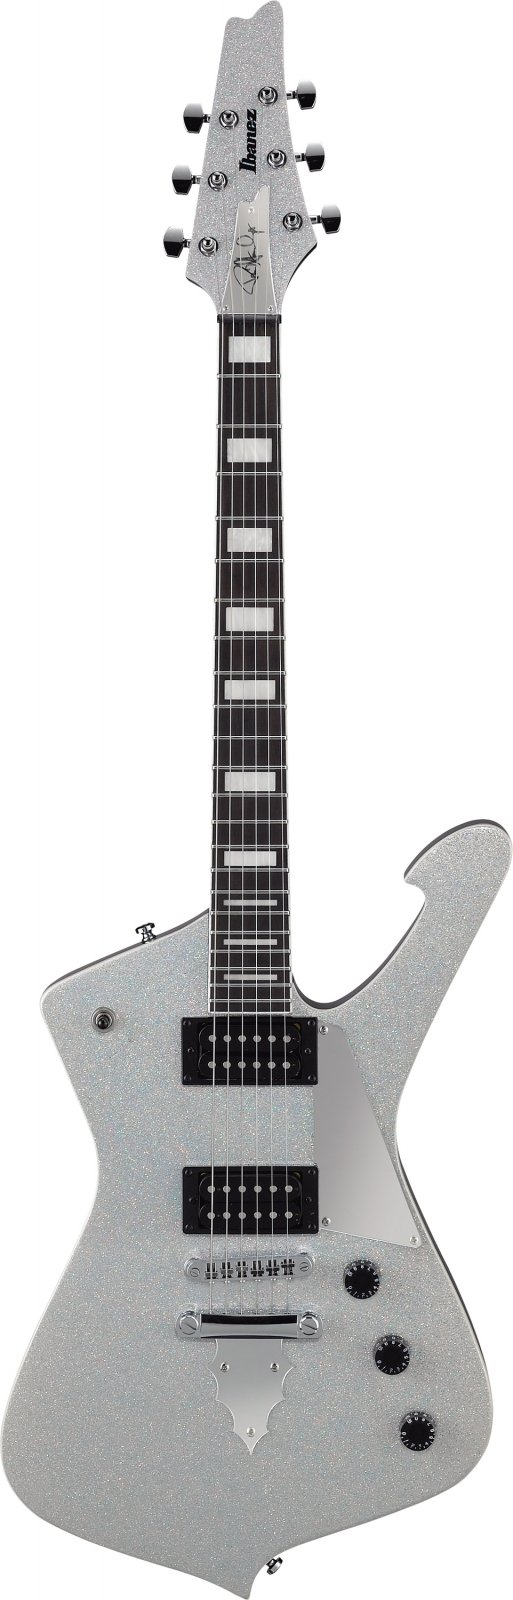 Ibanez PS60-SSL Paul Stanley Signature 6str Electric Guitar  - Silver Sparkle